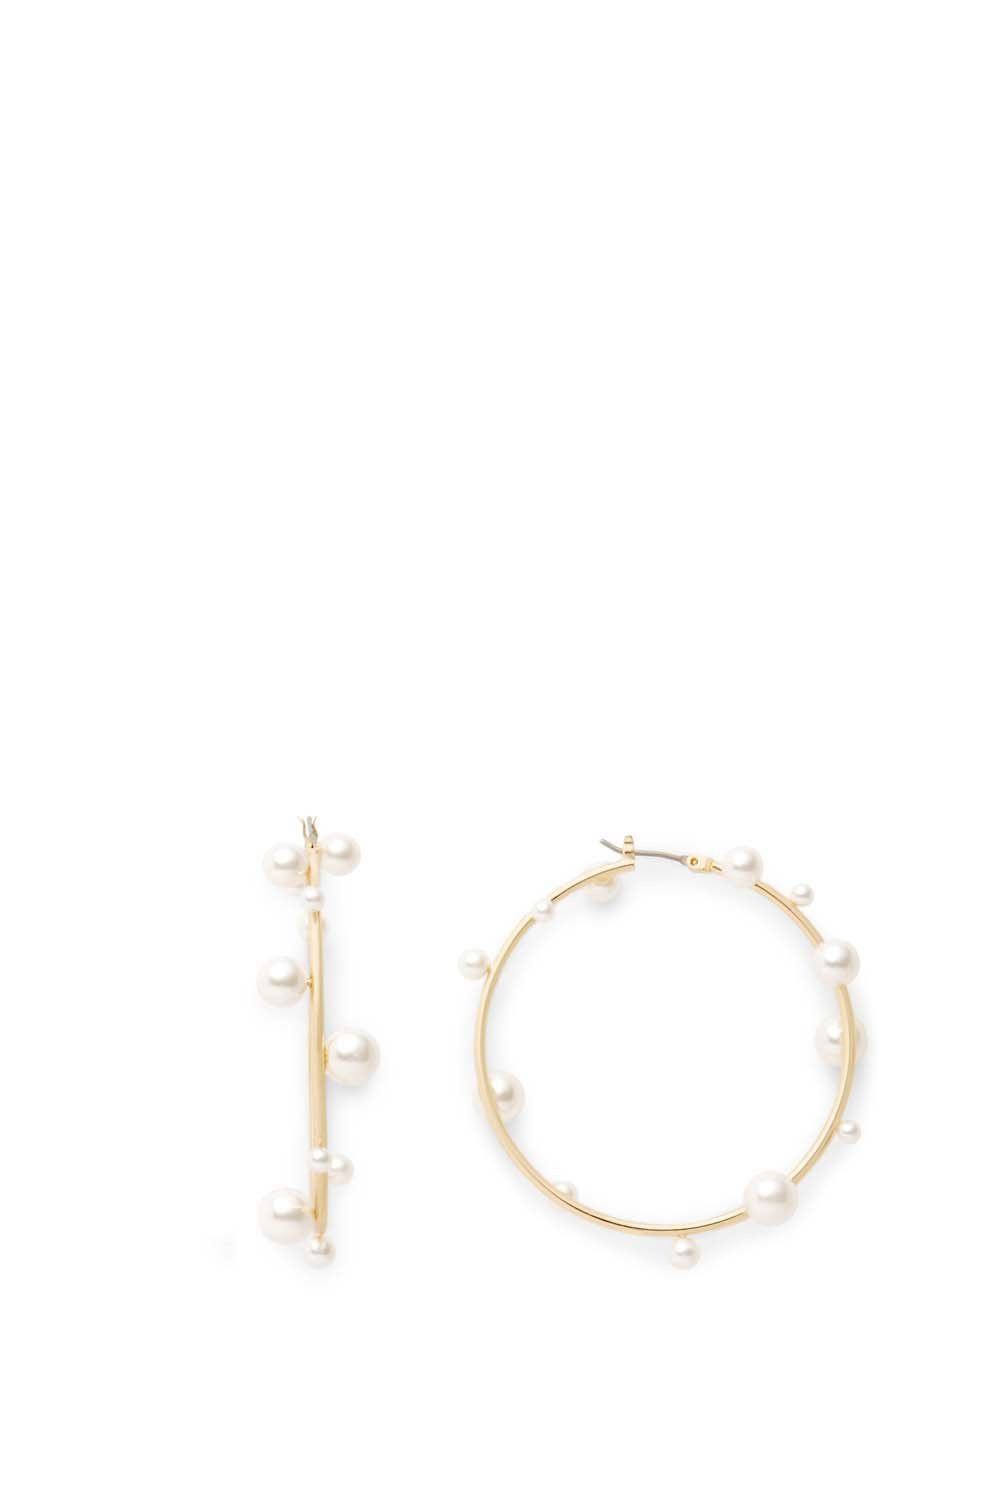 5f5a6fcb4b516 Sophia Floating Pearl Hoops | Wild Thing | Pearls, Gold hoops, Gold ...